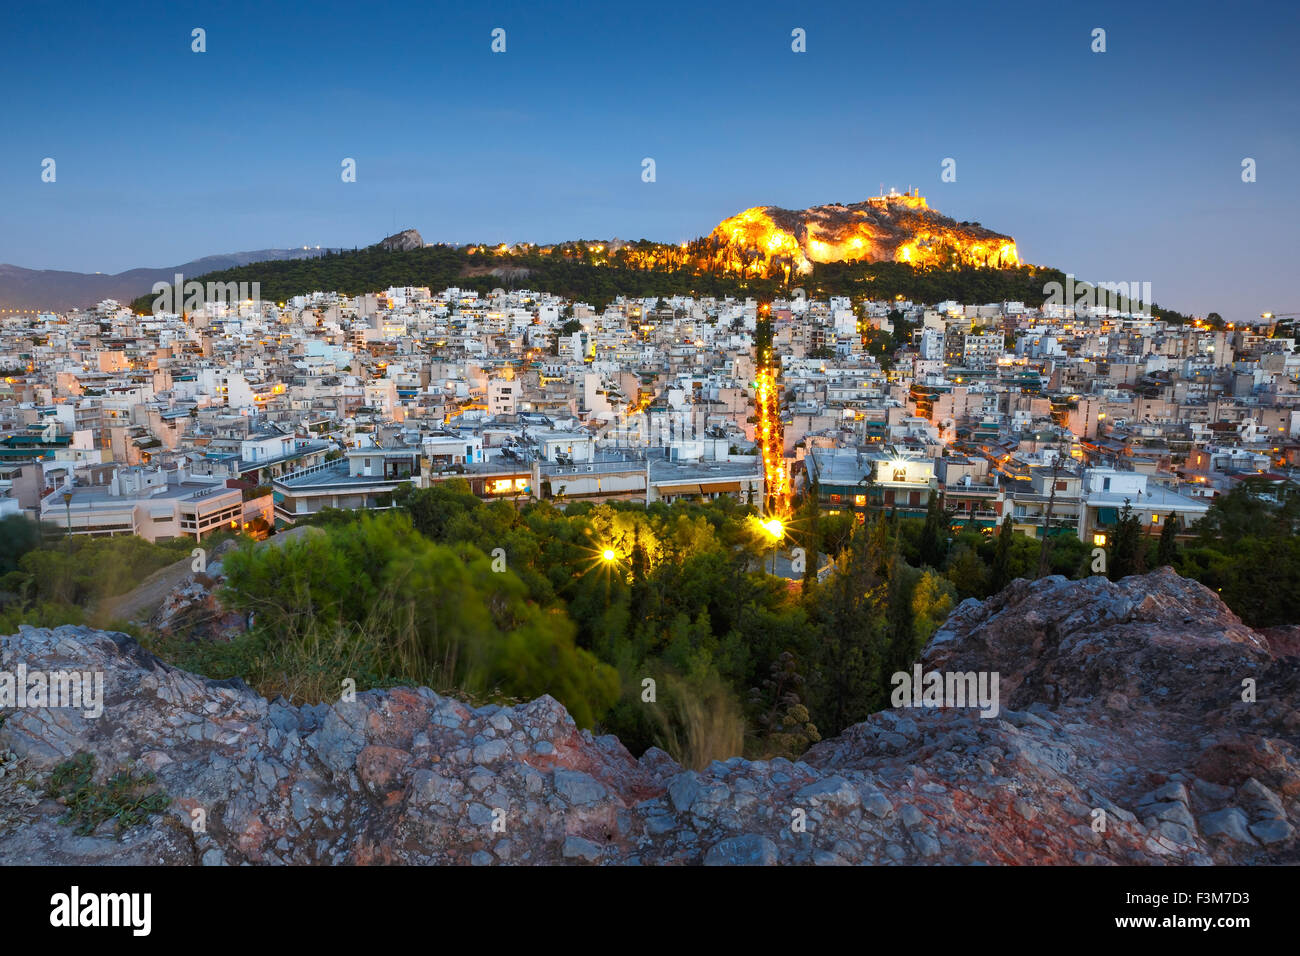 View of Lycabettus hill in central Athens from Strefi Hill. - Stock Image